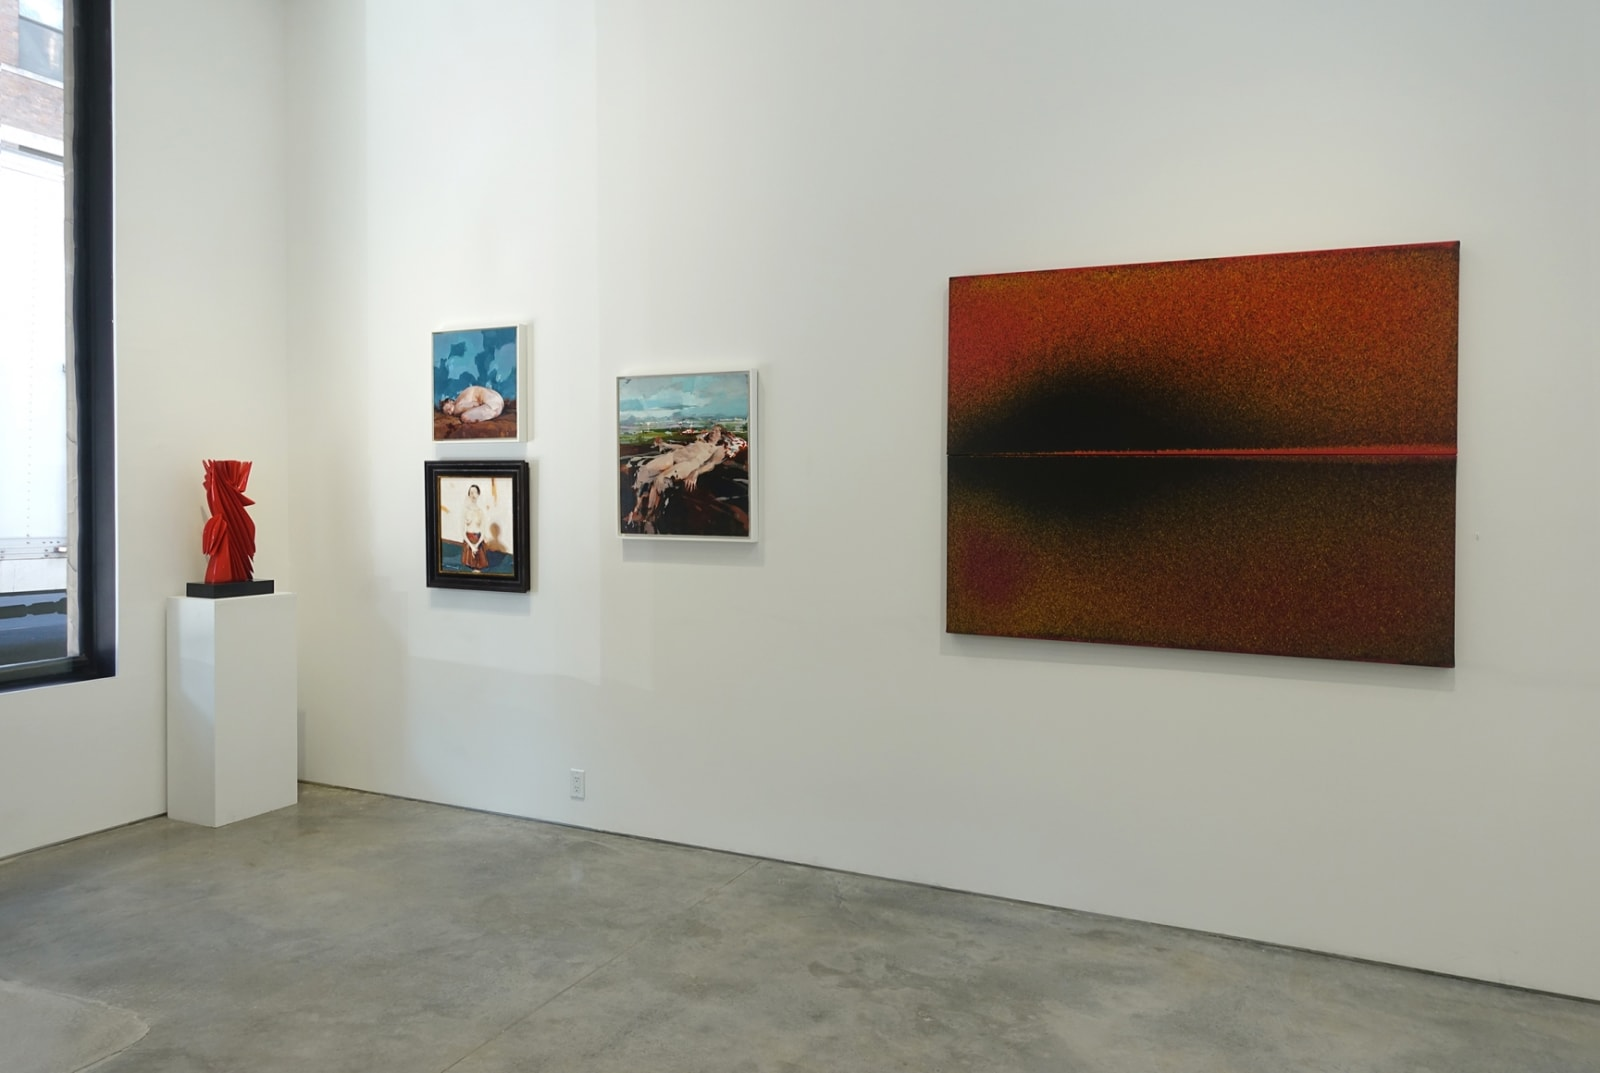 Installation view: Selections from our Contemporary Collection​